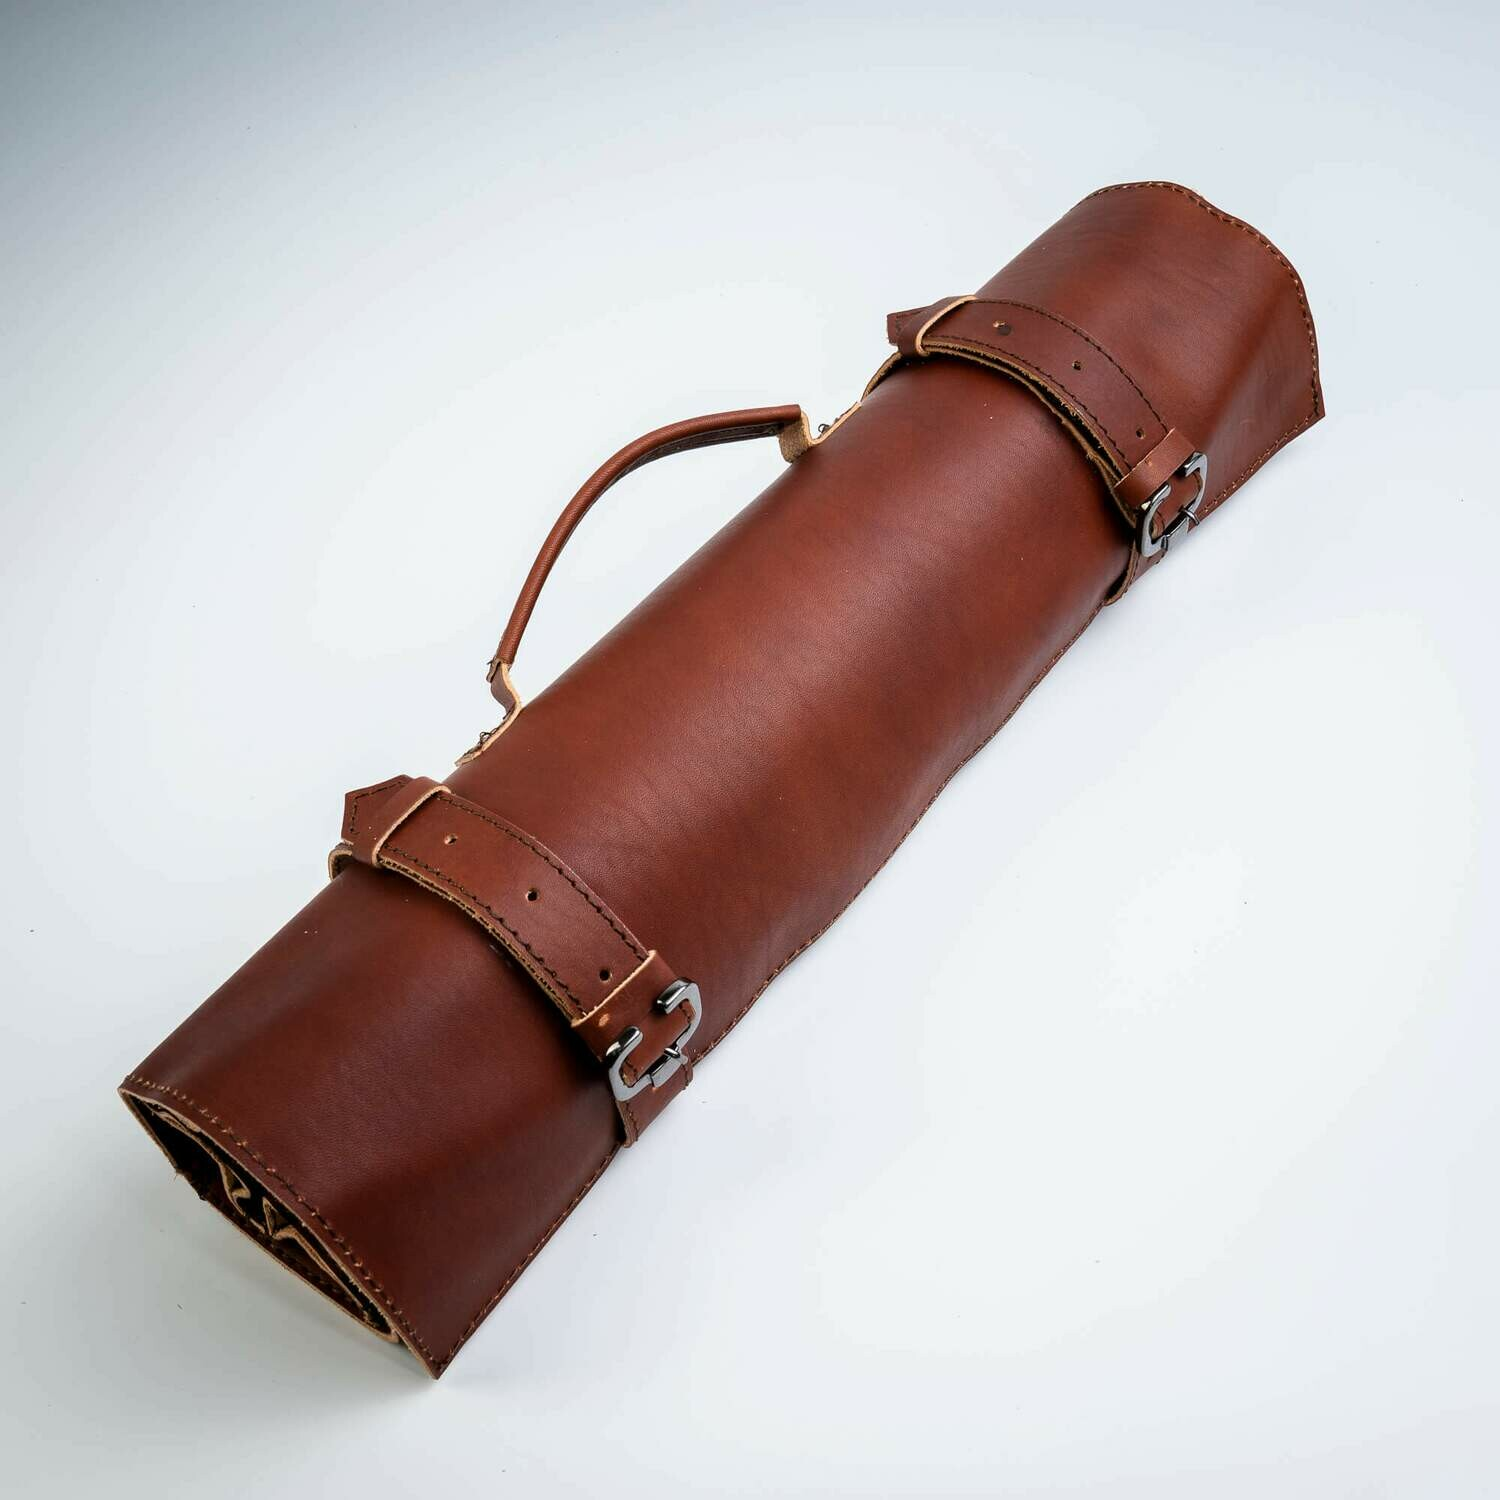 ROLL-LR506 - LEATHER BAG SCREW FOR KNIVES